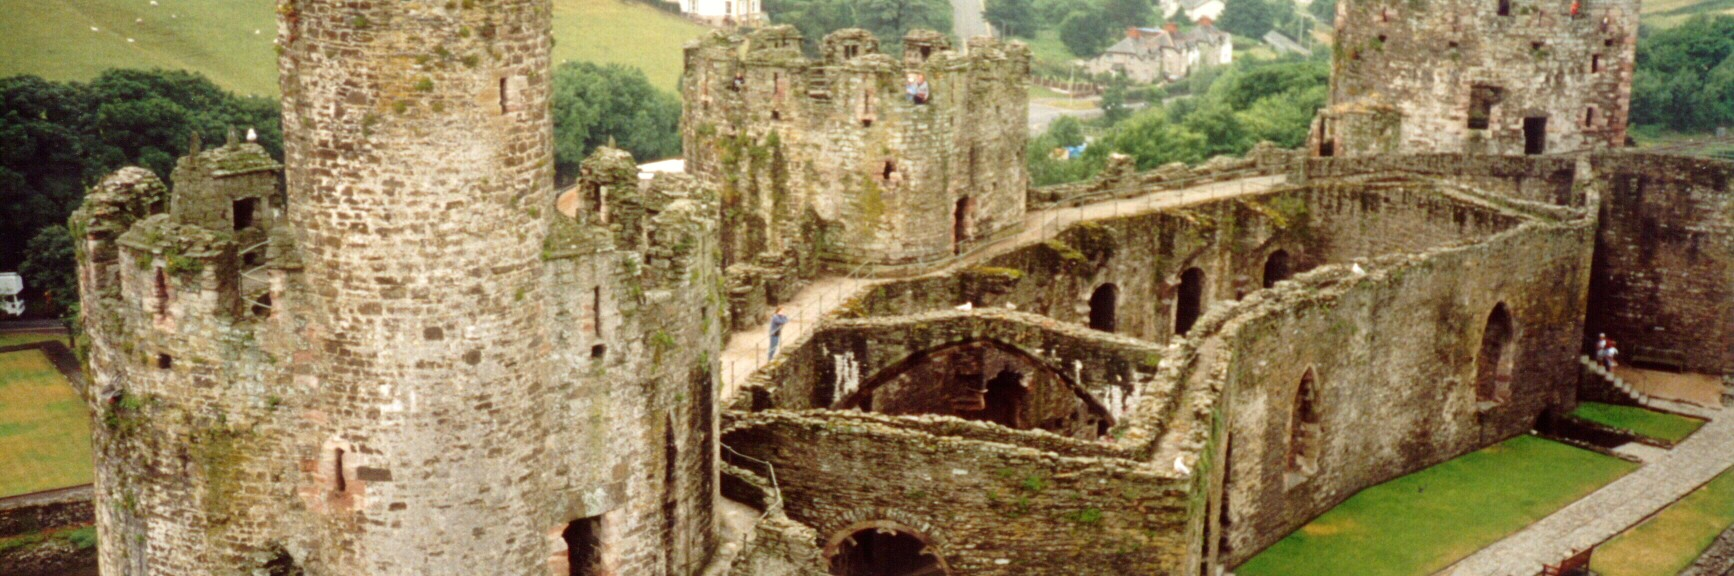 The ruins of Conwy Castle on the north shore of Wales.